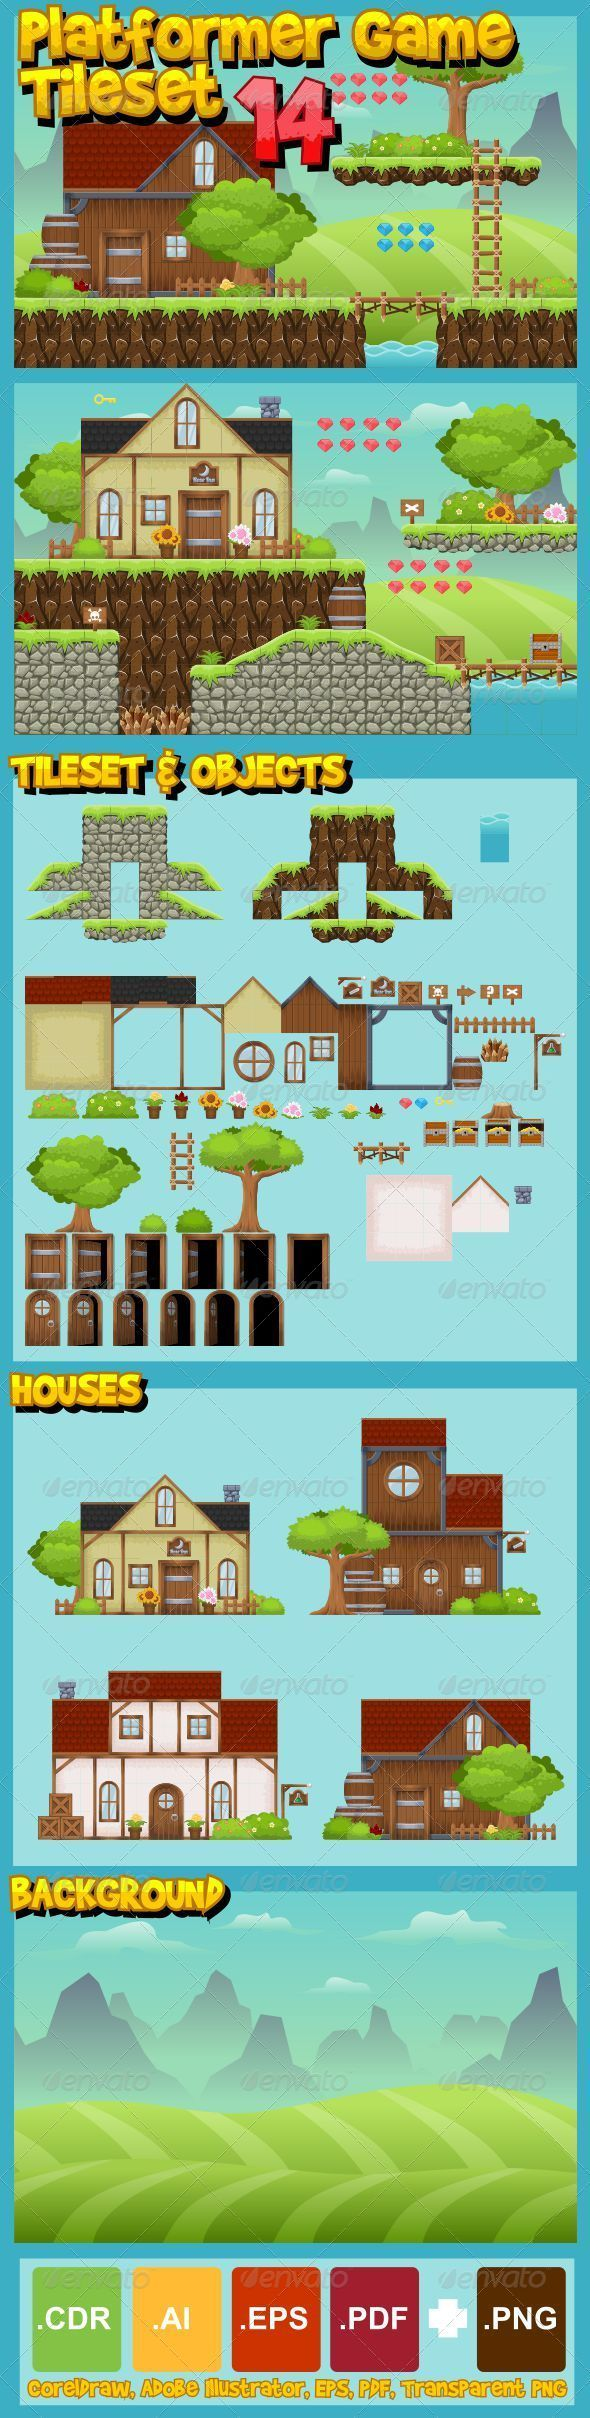 A set of vector game asset / graphic / sprite / art contains ground and house tiles and several items / objects / decorations, and premade house, used for creating platformer games.  Suitable for platformer games with medieval, adventure, action, fantasy, rpg, kingdom, village, and other similar theme. #game #asset #tileset #spritesheet #tile #set #sprite #sheet